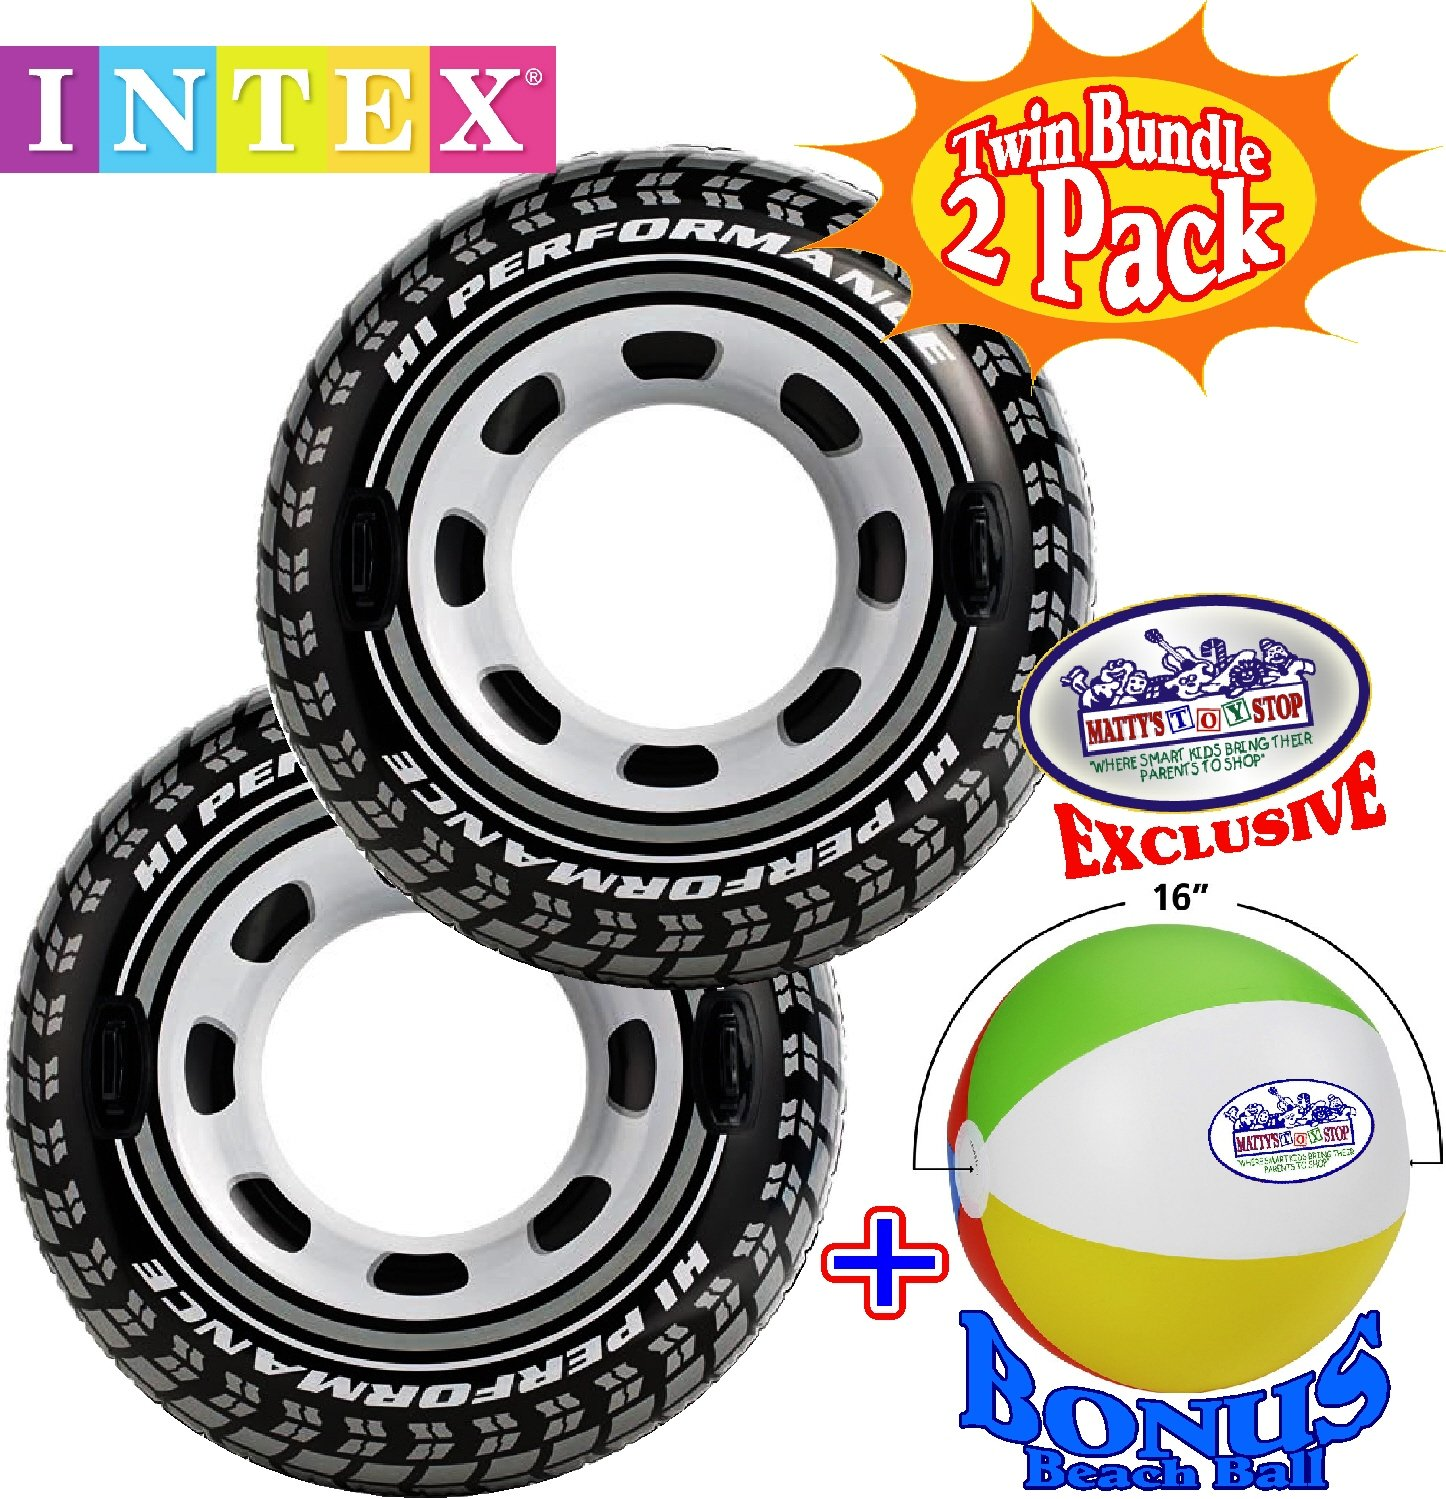 Intex Inflatable Monster Truck Tire Tubes (45'' Diameter) Twin Set Bundle with Bonus ''Matty's Toy Stop'' 16'' Beach Ball - 2 Pack by Intex